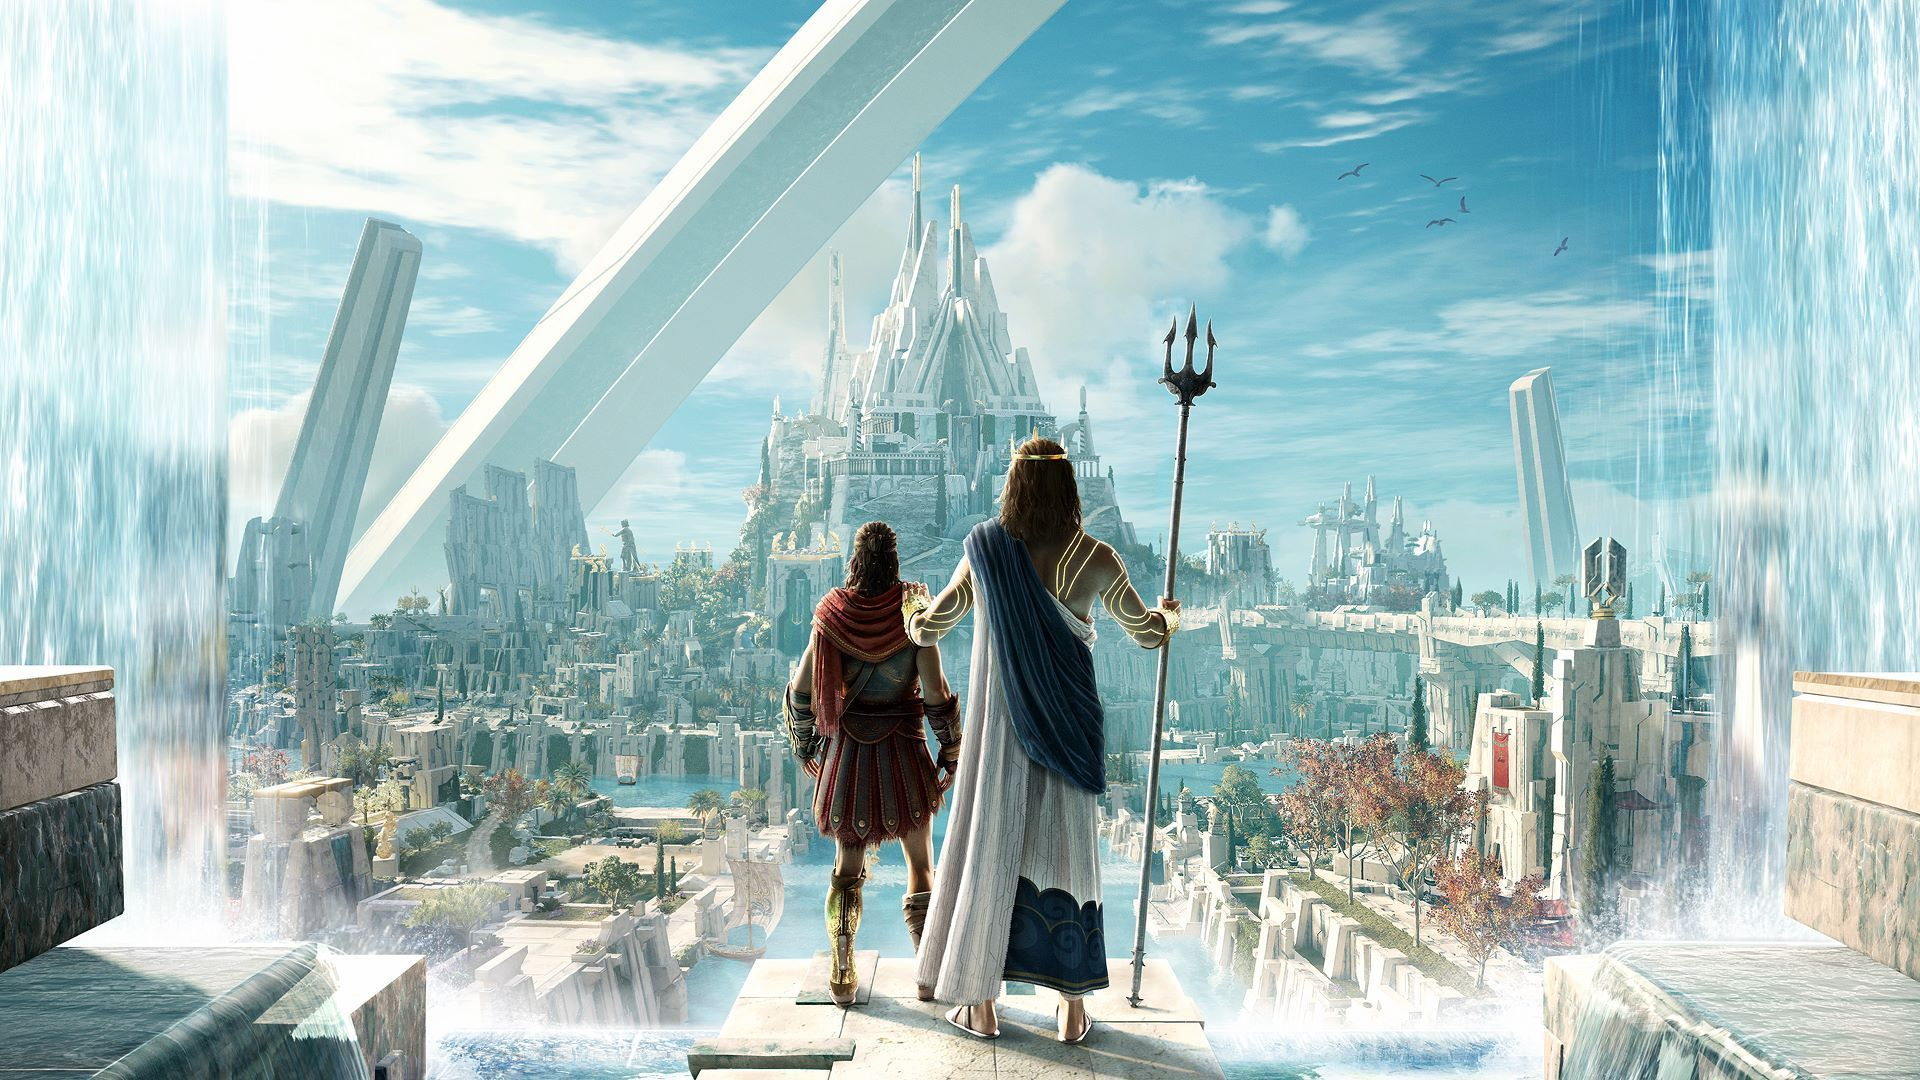 Atlantis - Assassin's Creed Valhalla to Reportedly Feature Beowulf DLC